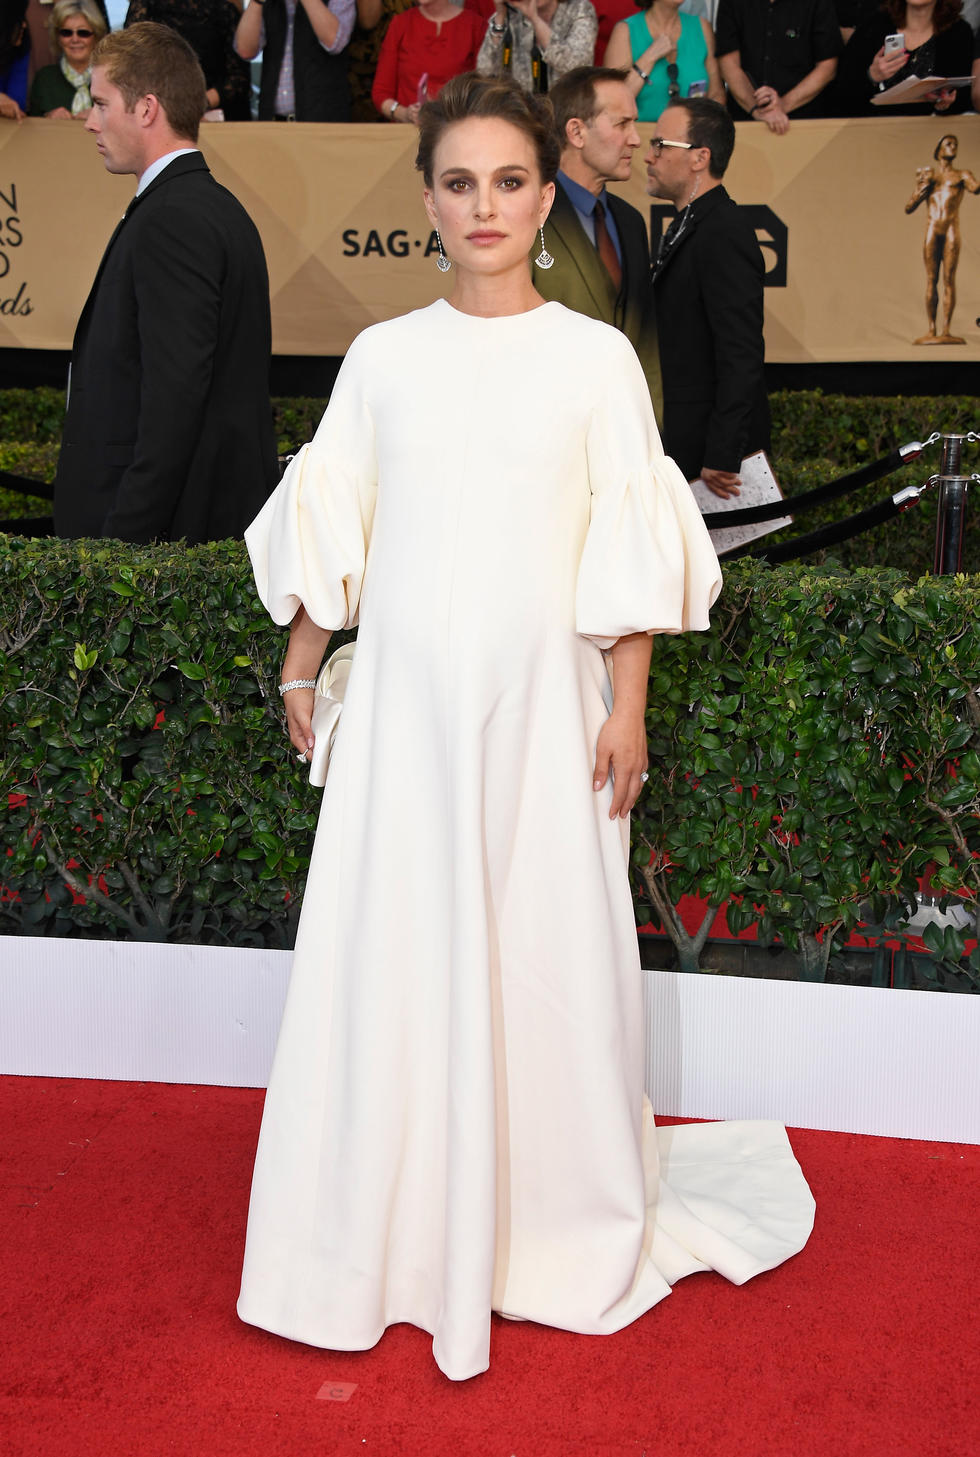 In Dior Haute Couture at the Screen Actors Guild Awards